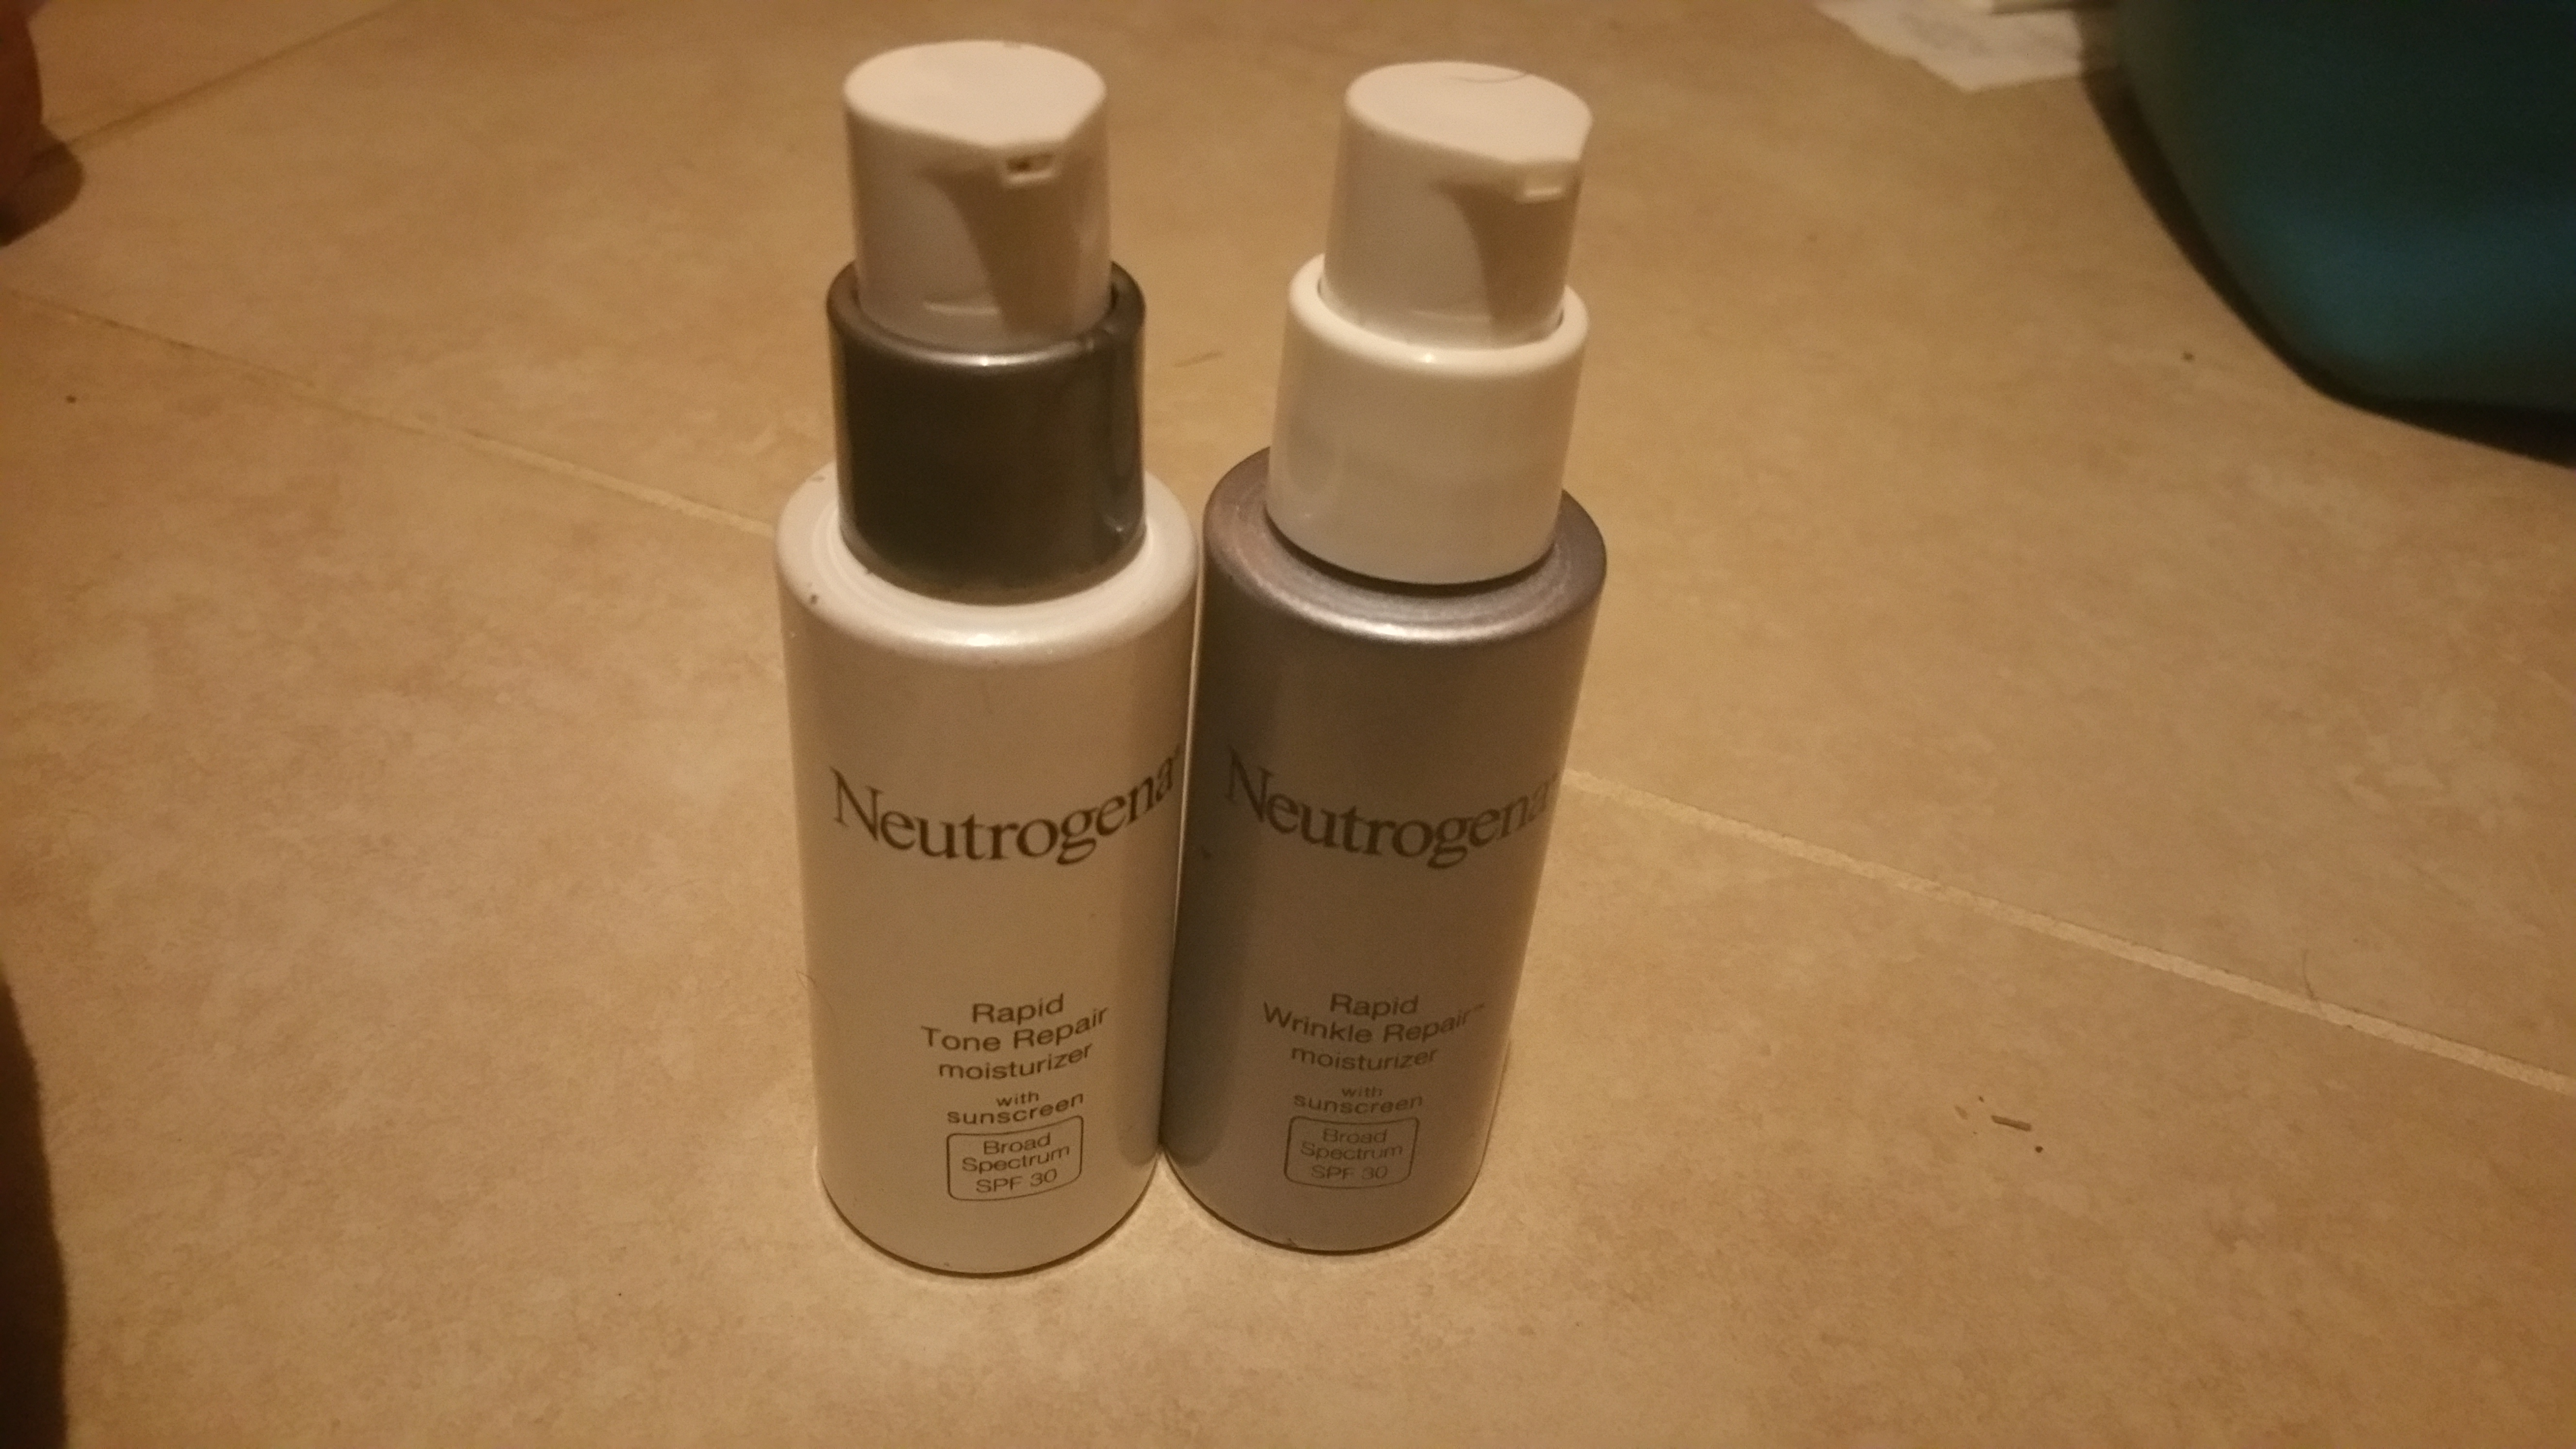 Photo of Neutrogena Rapid Tone Repair Moisturizer SPF 30 uploaded by Asante M.